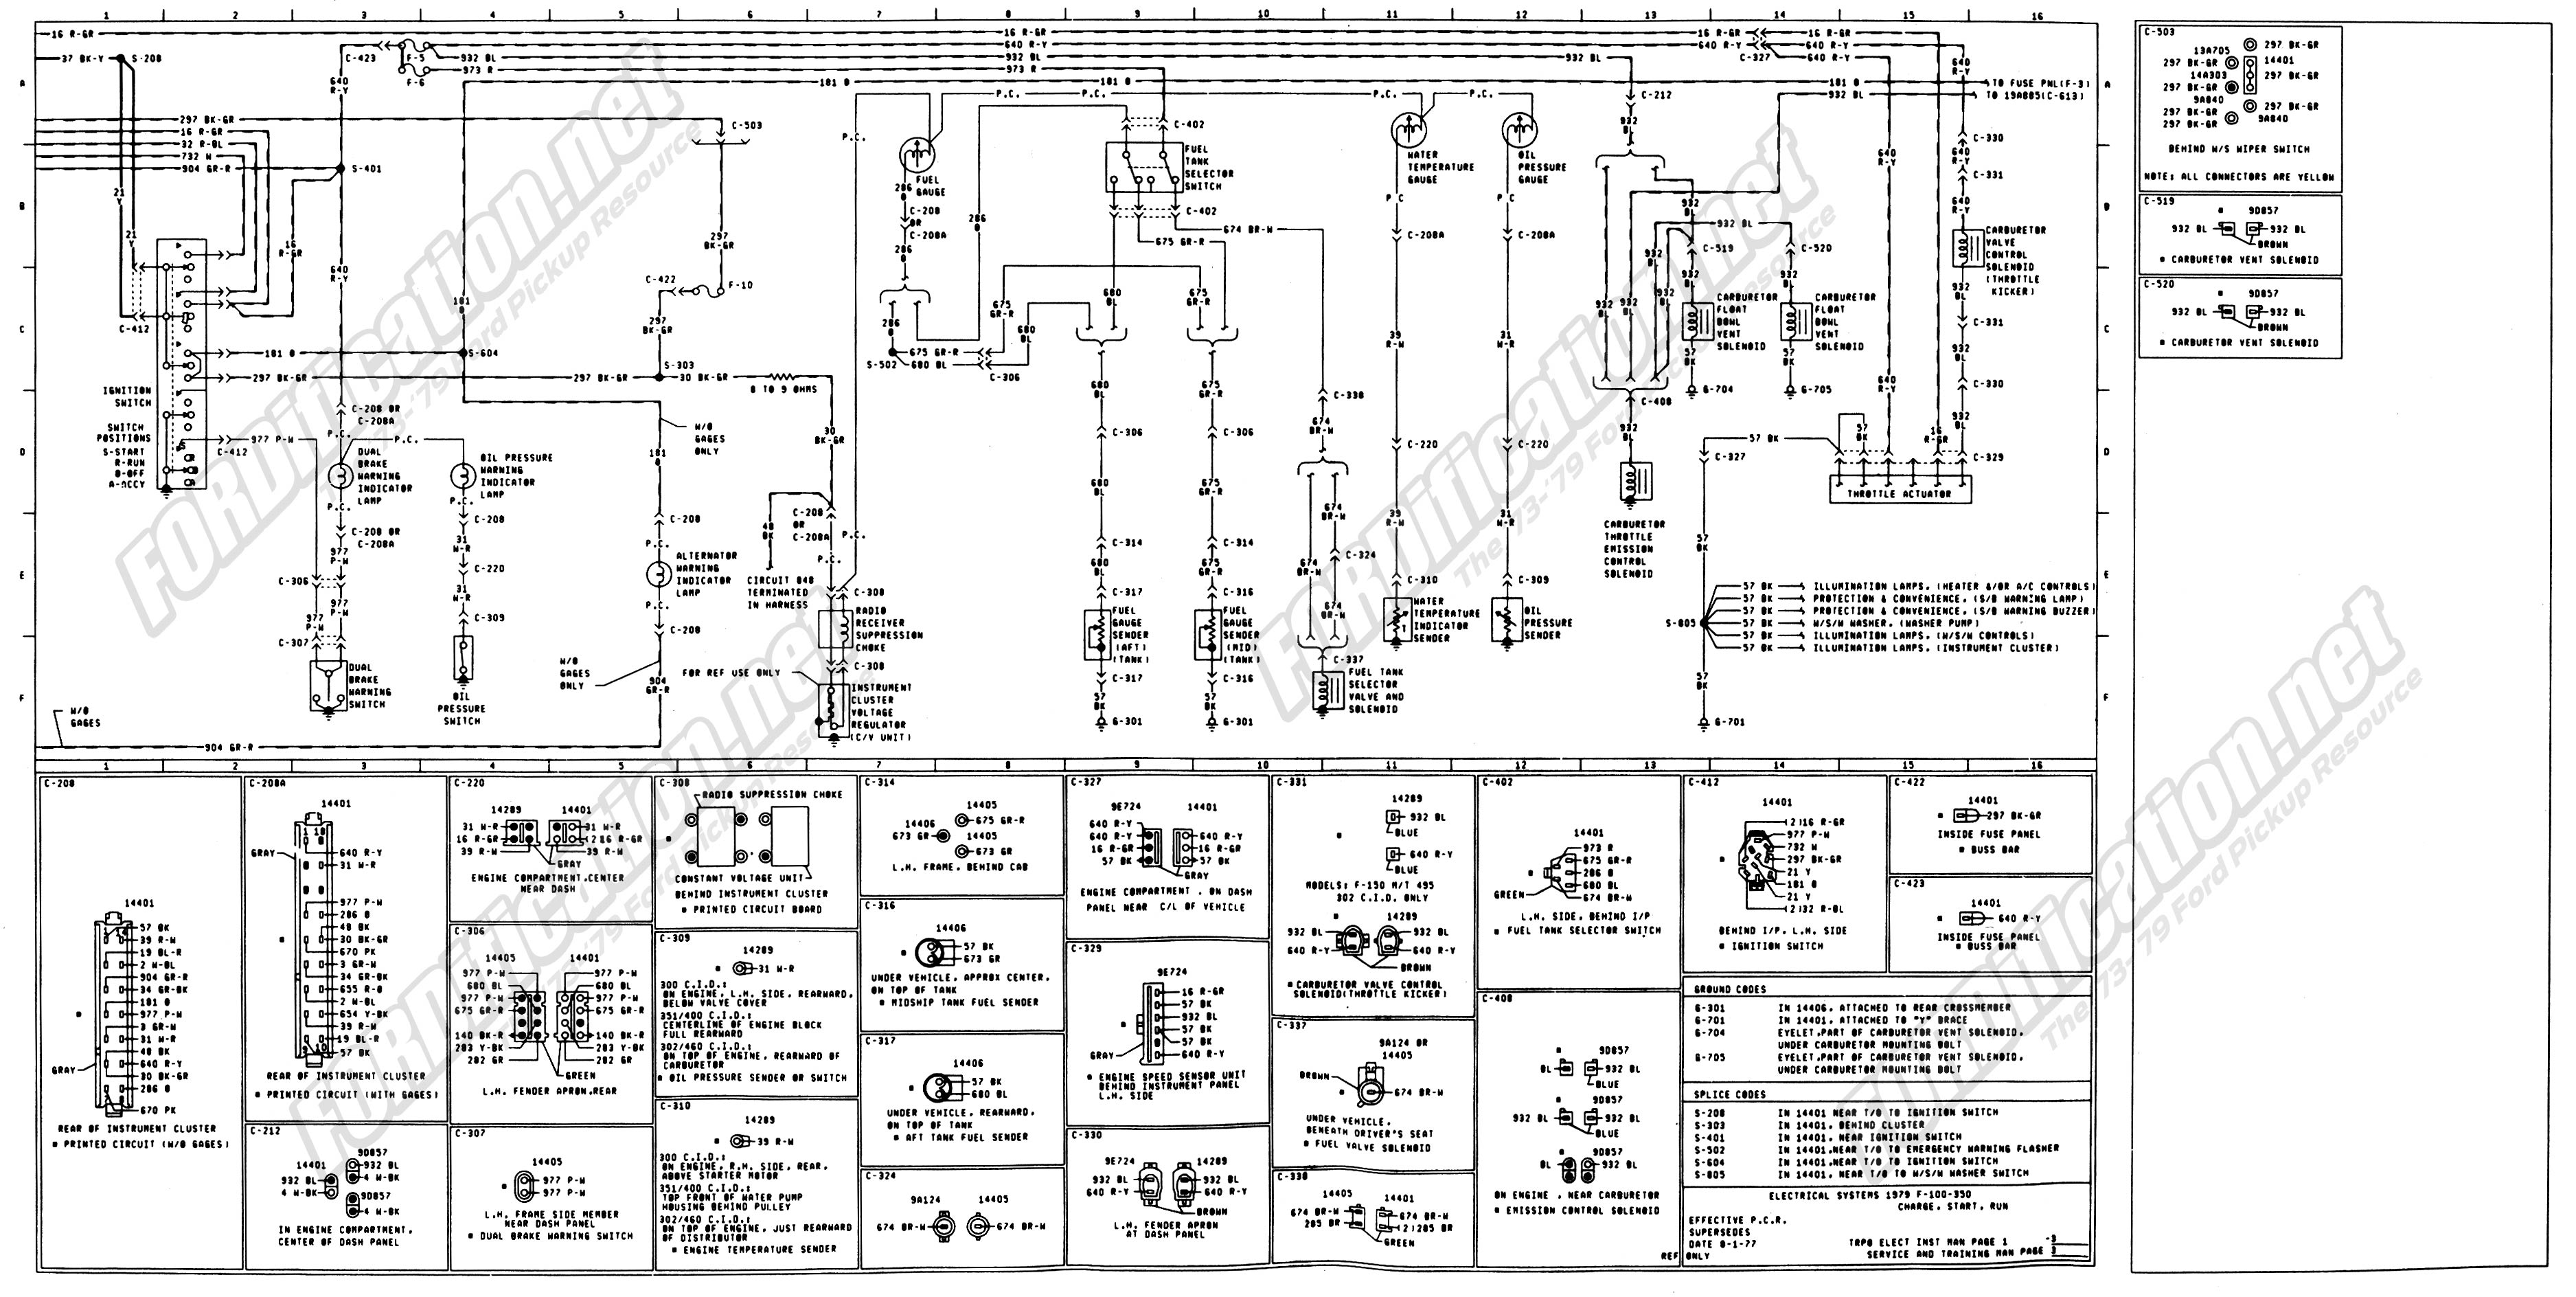 961502 Wiring Diagram Schamatic Help on 1997 ford super duty wiring diagram